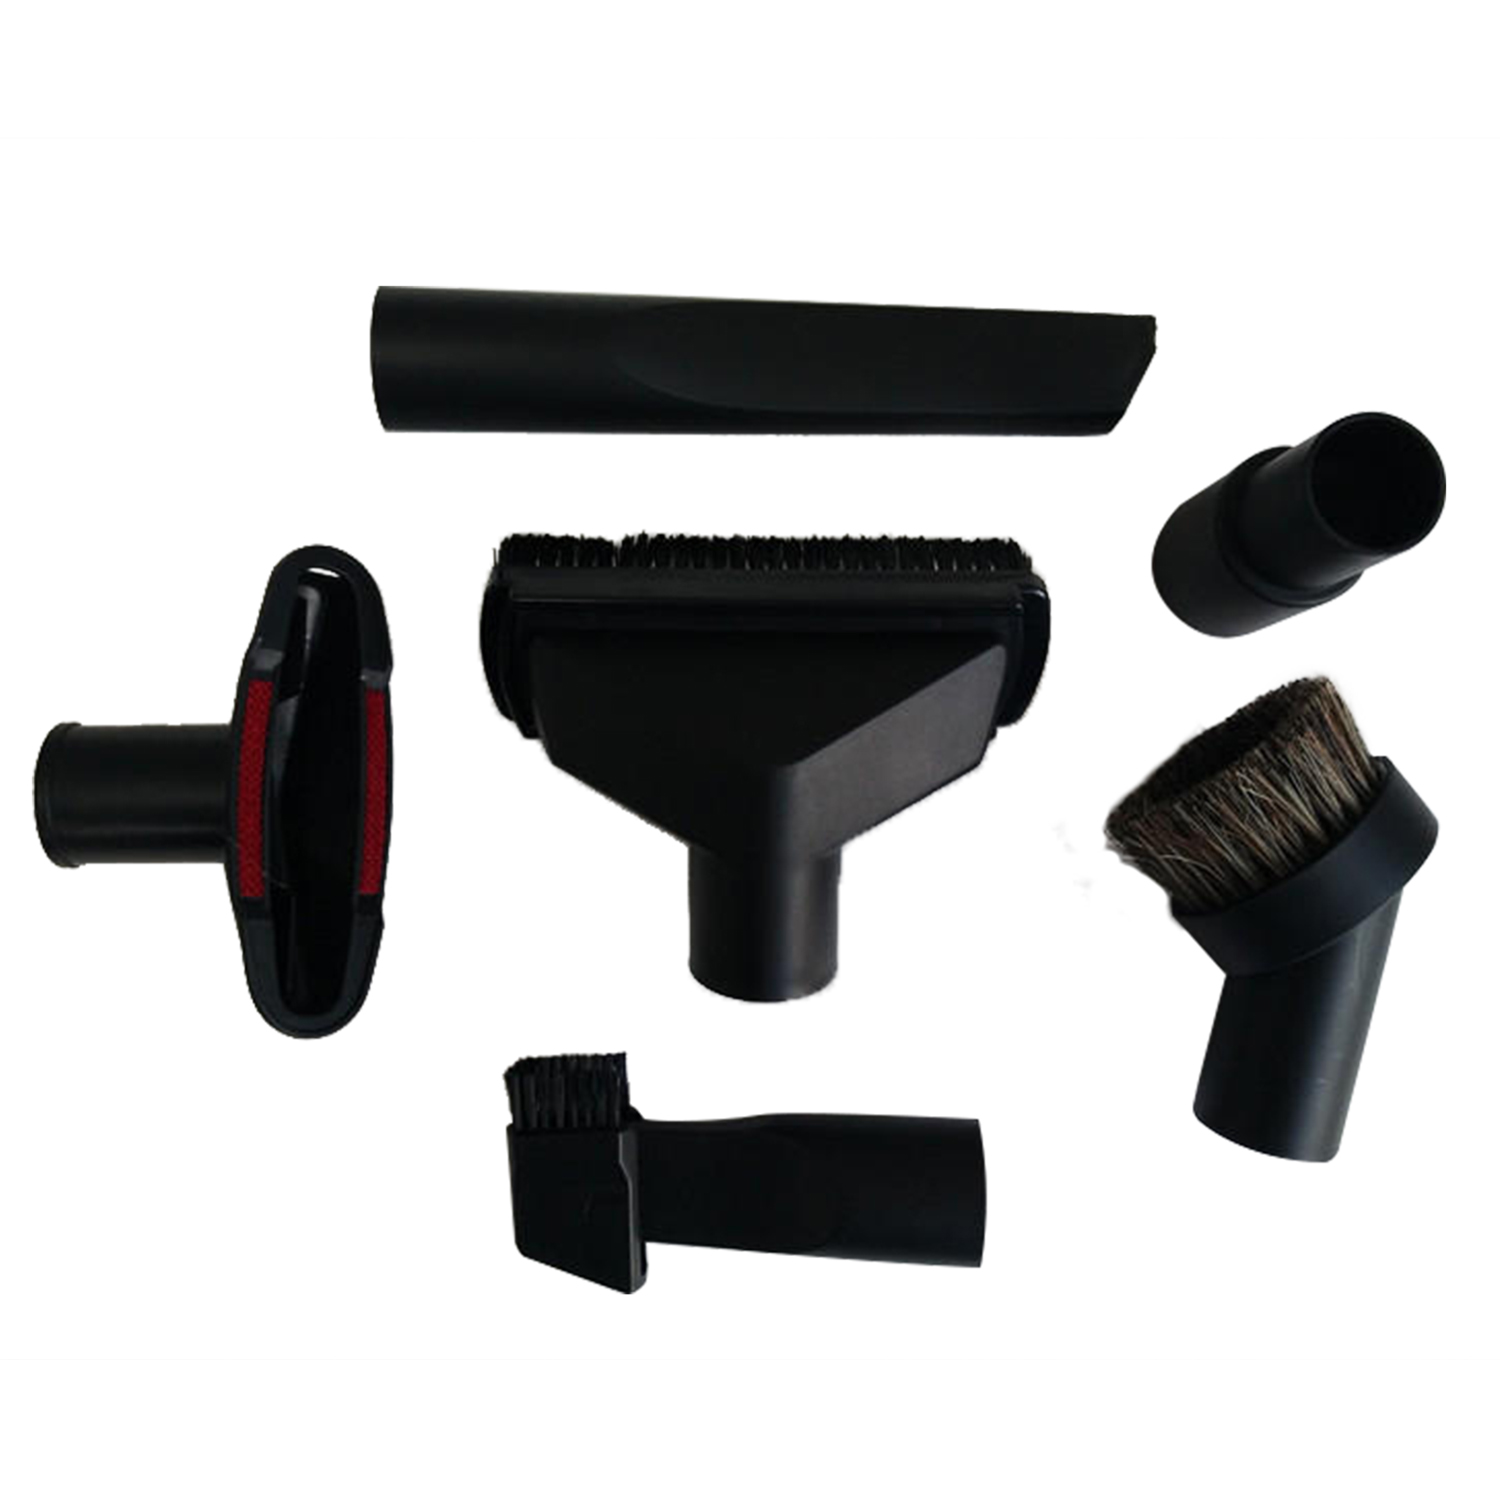 1 Set Vacuum Cleaner Accessories Multifunction Universal 30mm Parts Accessory Small Nozzle Brush Floor Tools Filter Bag Cleaning 32 35mm vacuum cleaner accessories multifunctional nozzle set universal pocket size piece set small brush head brush 9pcs lot